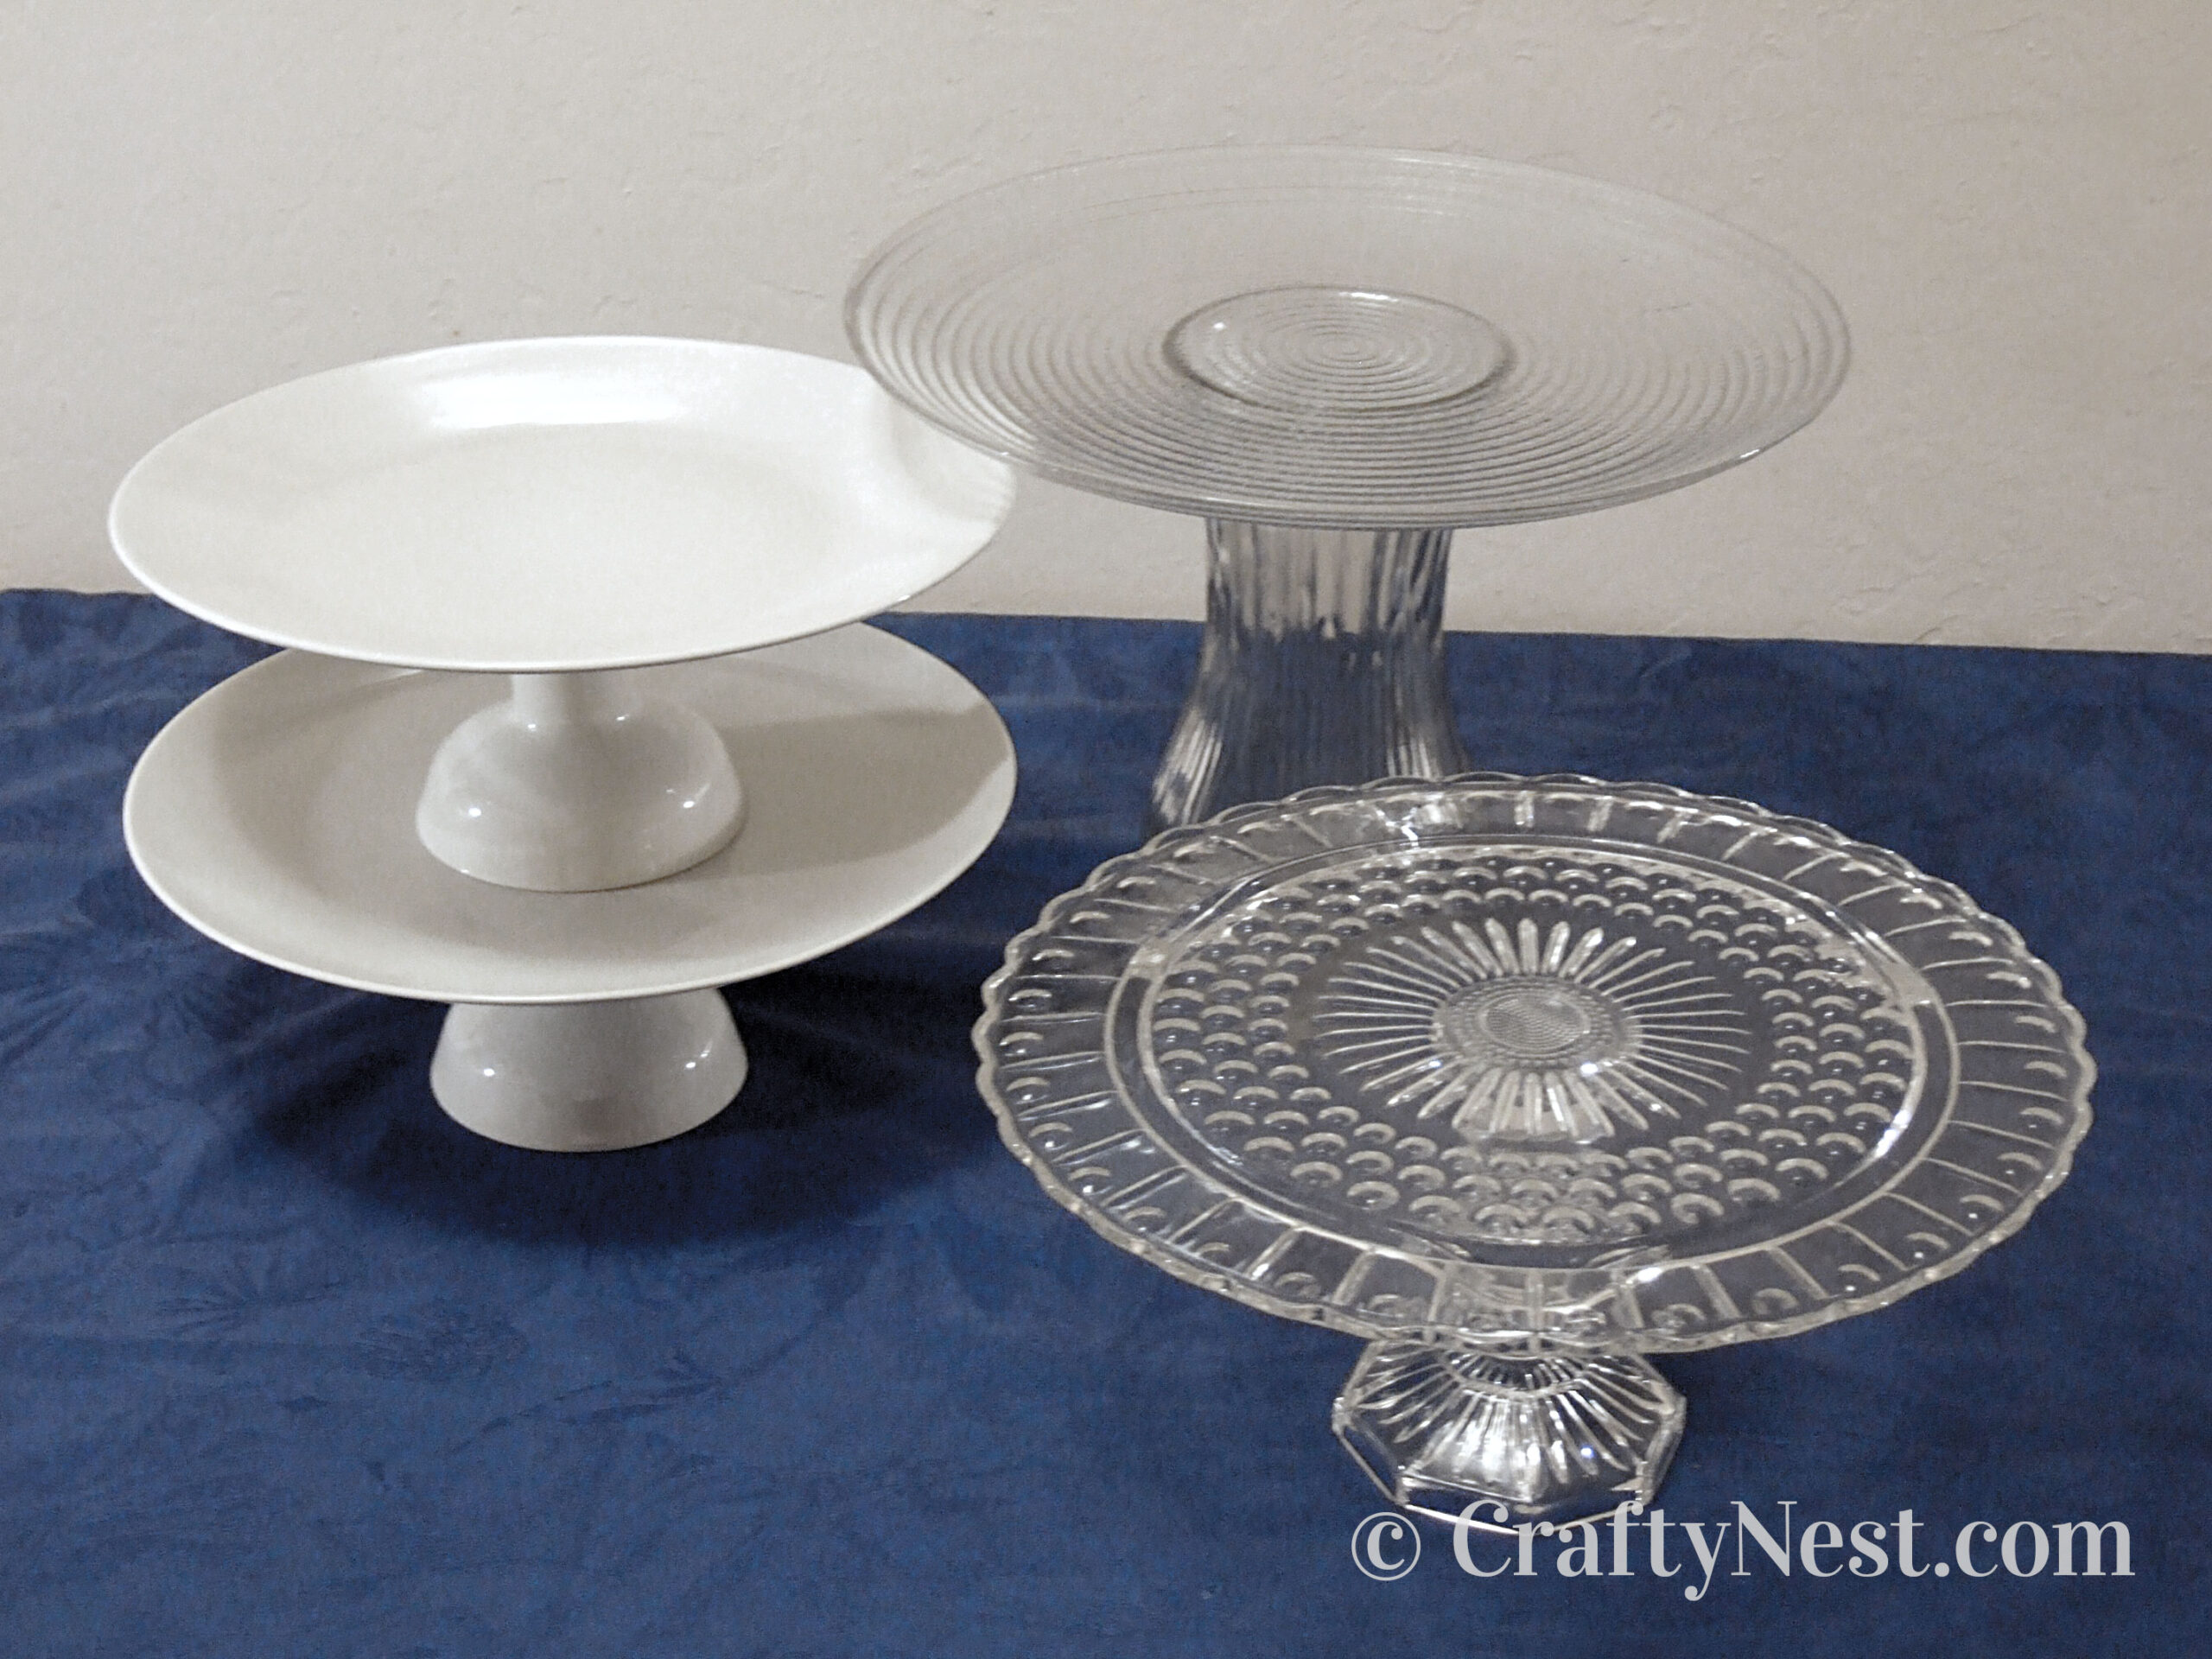 Four cake stands, photo